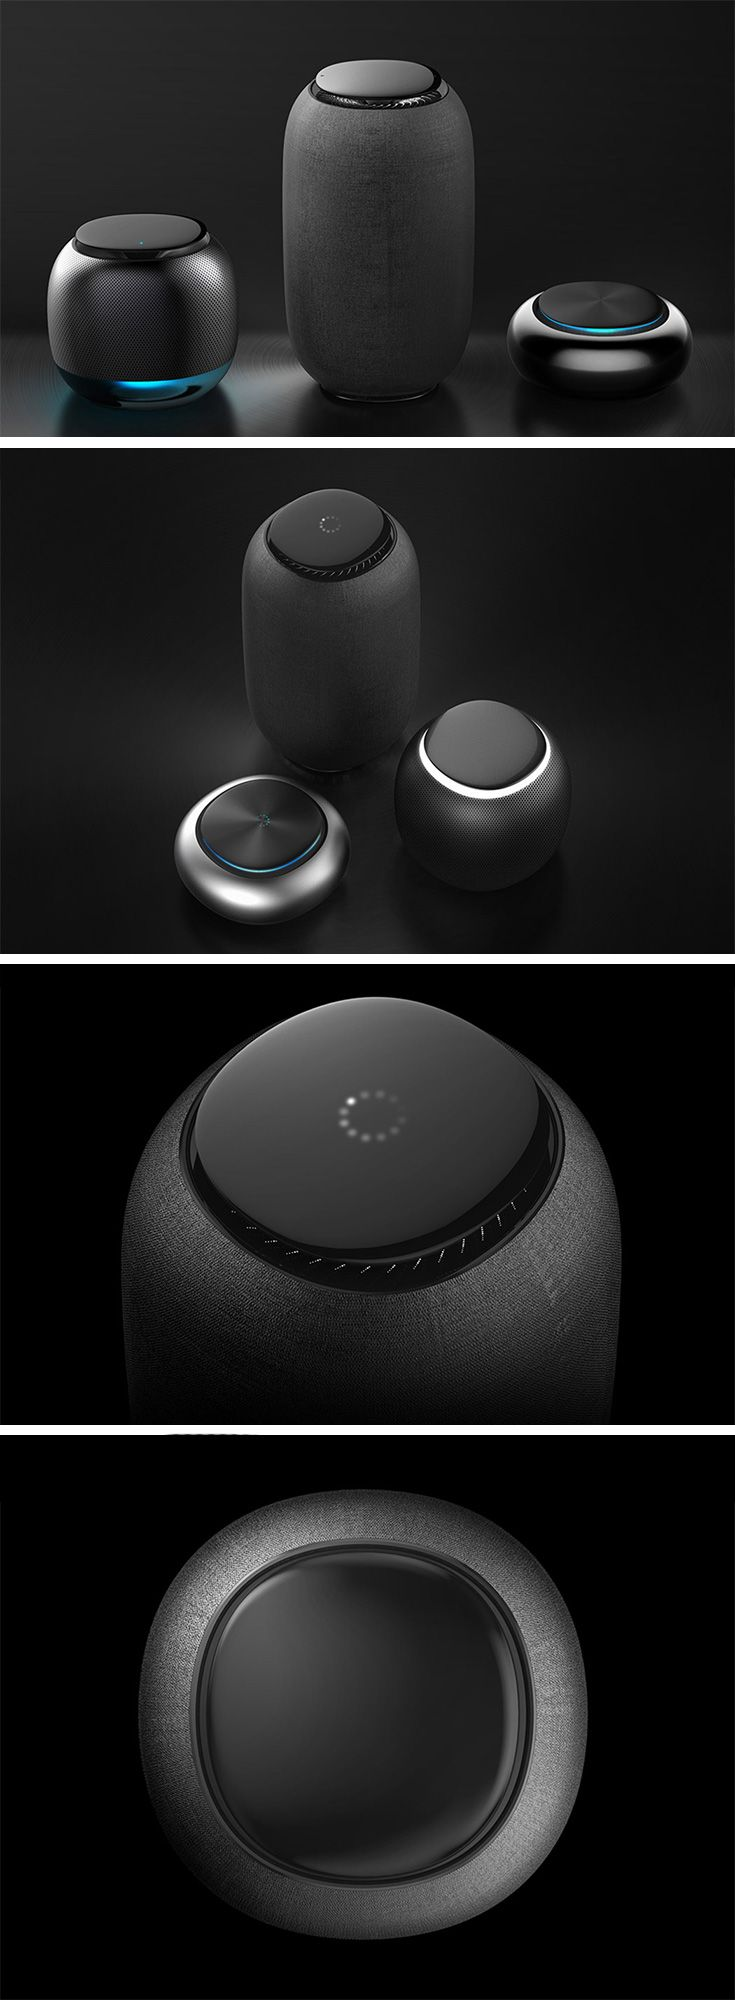 If your Alexa device looks a little too gadgety for your taste, you might like O-JIA. The Alexa-compatable series features 3 distinct shapes and sizes designed with a softer, more elegant aesthetic. No messy buttons or big logos, they're clean and smooth with an intuitive touch-pad interface on top.